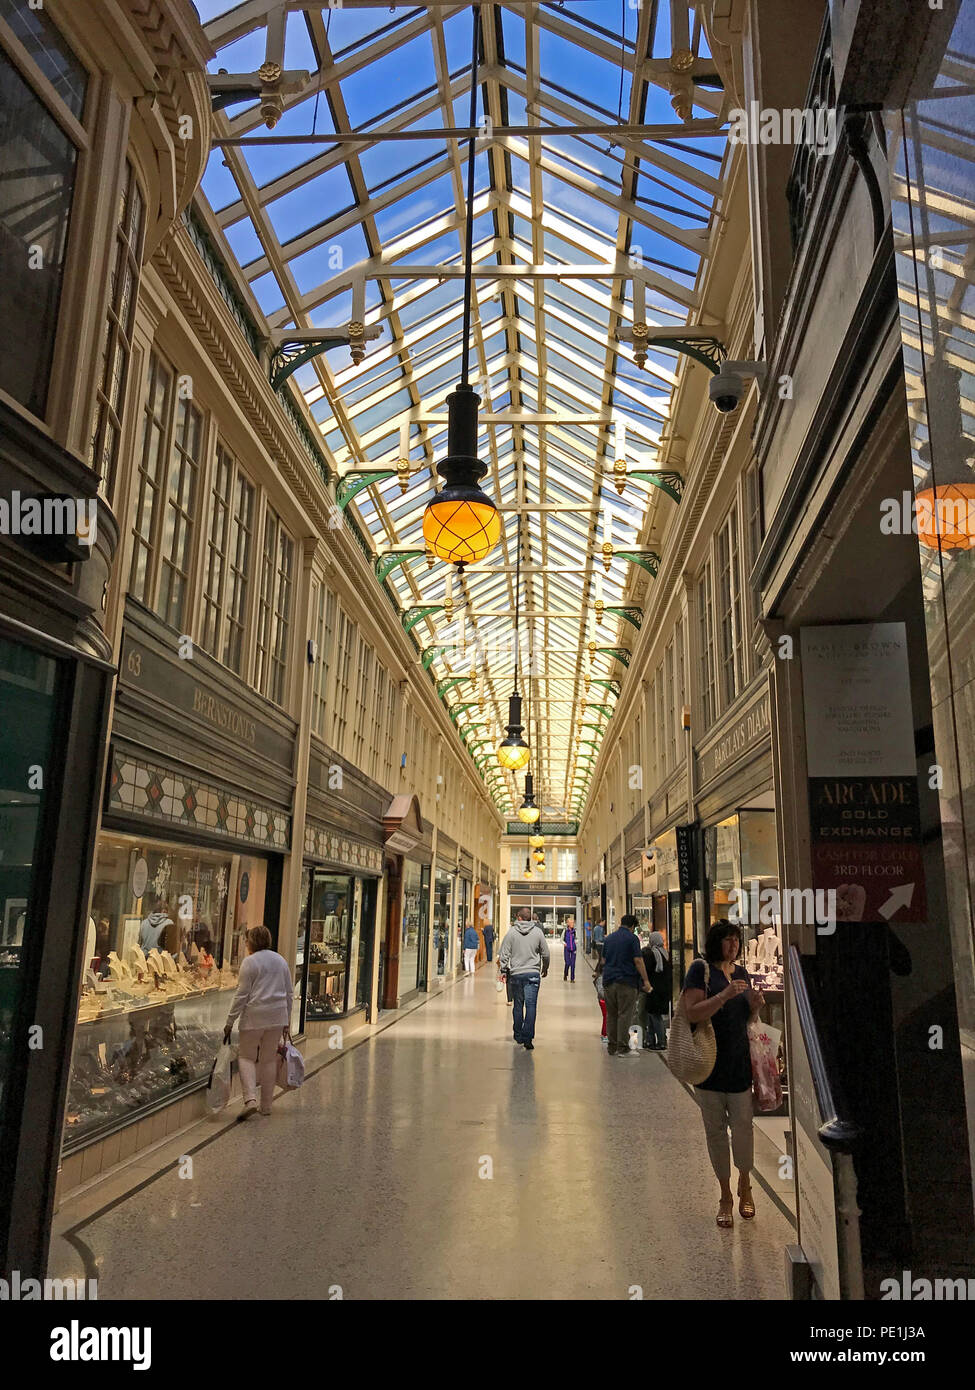 GoTonySmith @HotpixUK,GoTonySmith,@HotpixUK,city centre,Victorian,GB,shopping,retail,Arcade,Strathcylde,UK,shop,retailing,roof,canopy,light,lighting